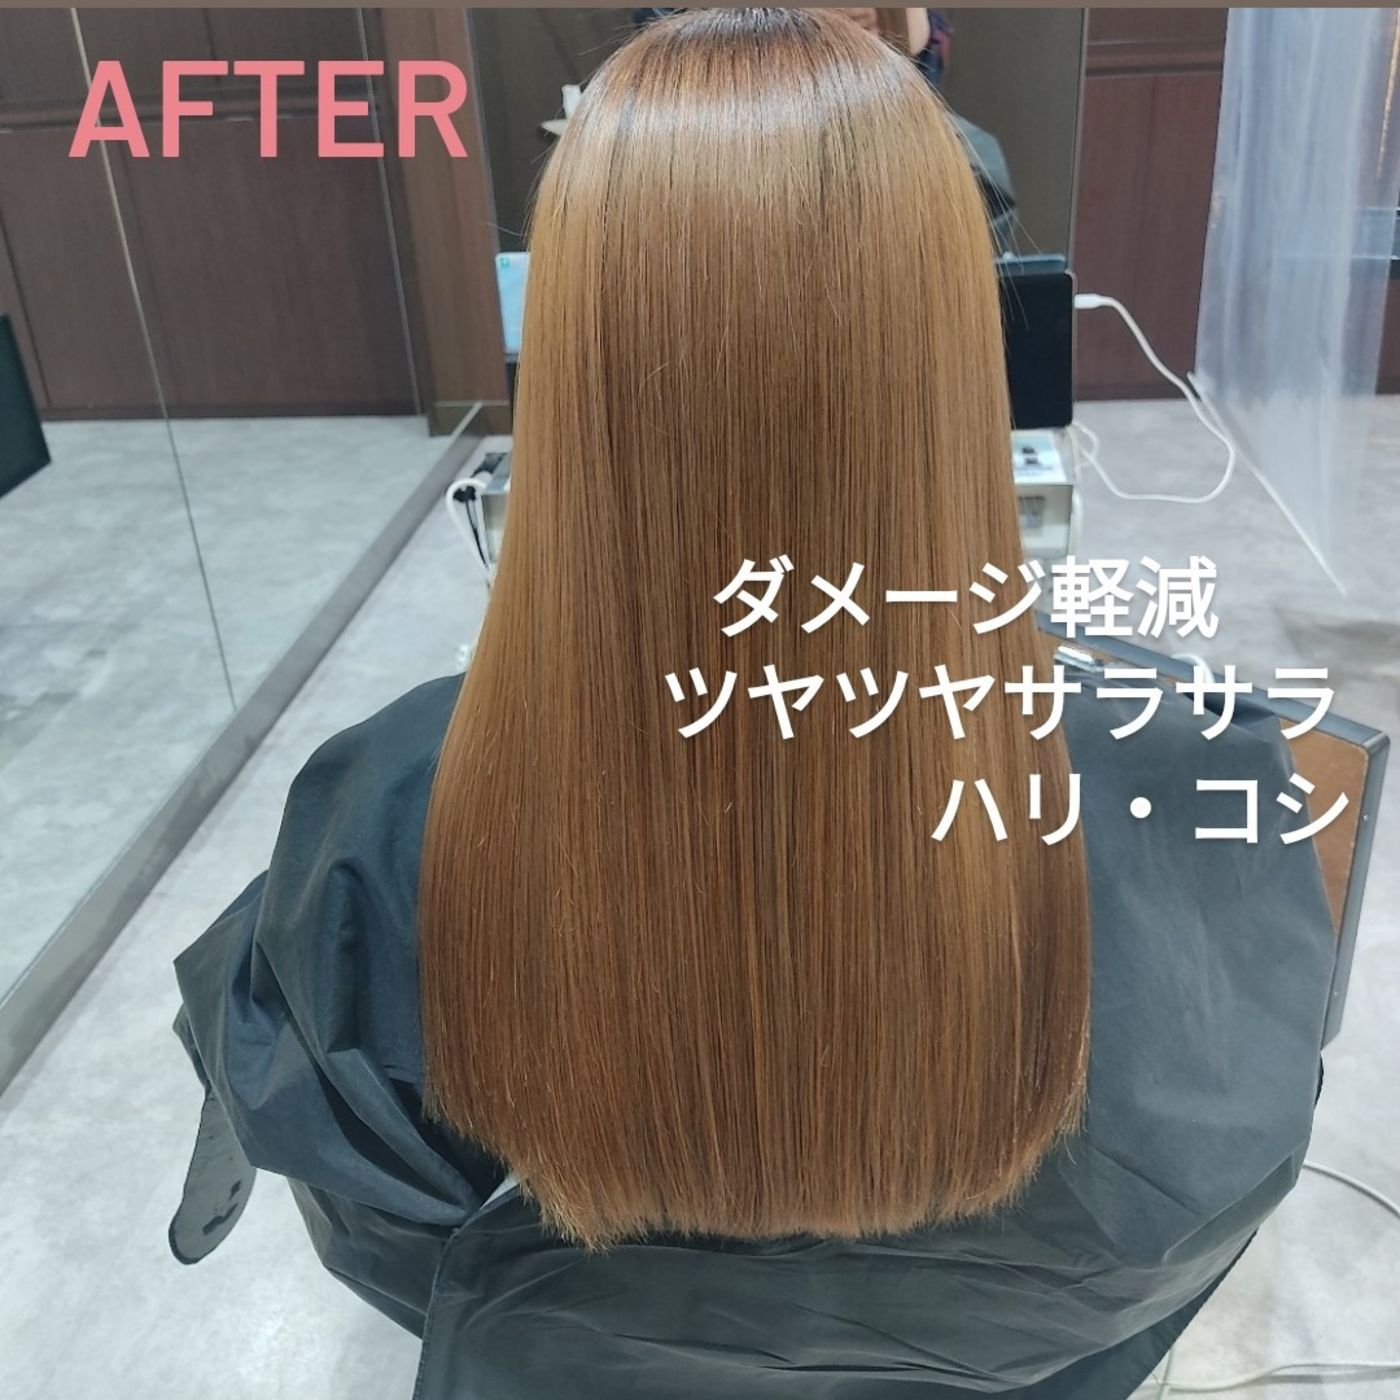 Afterの状態